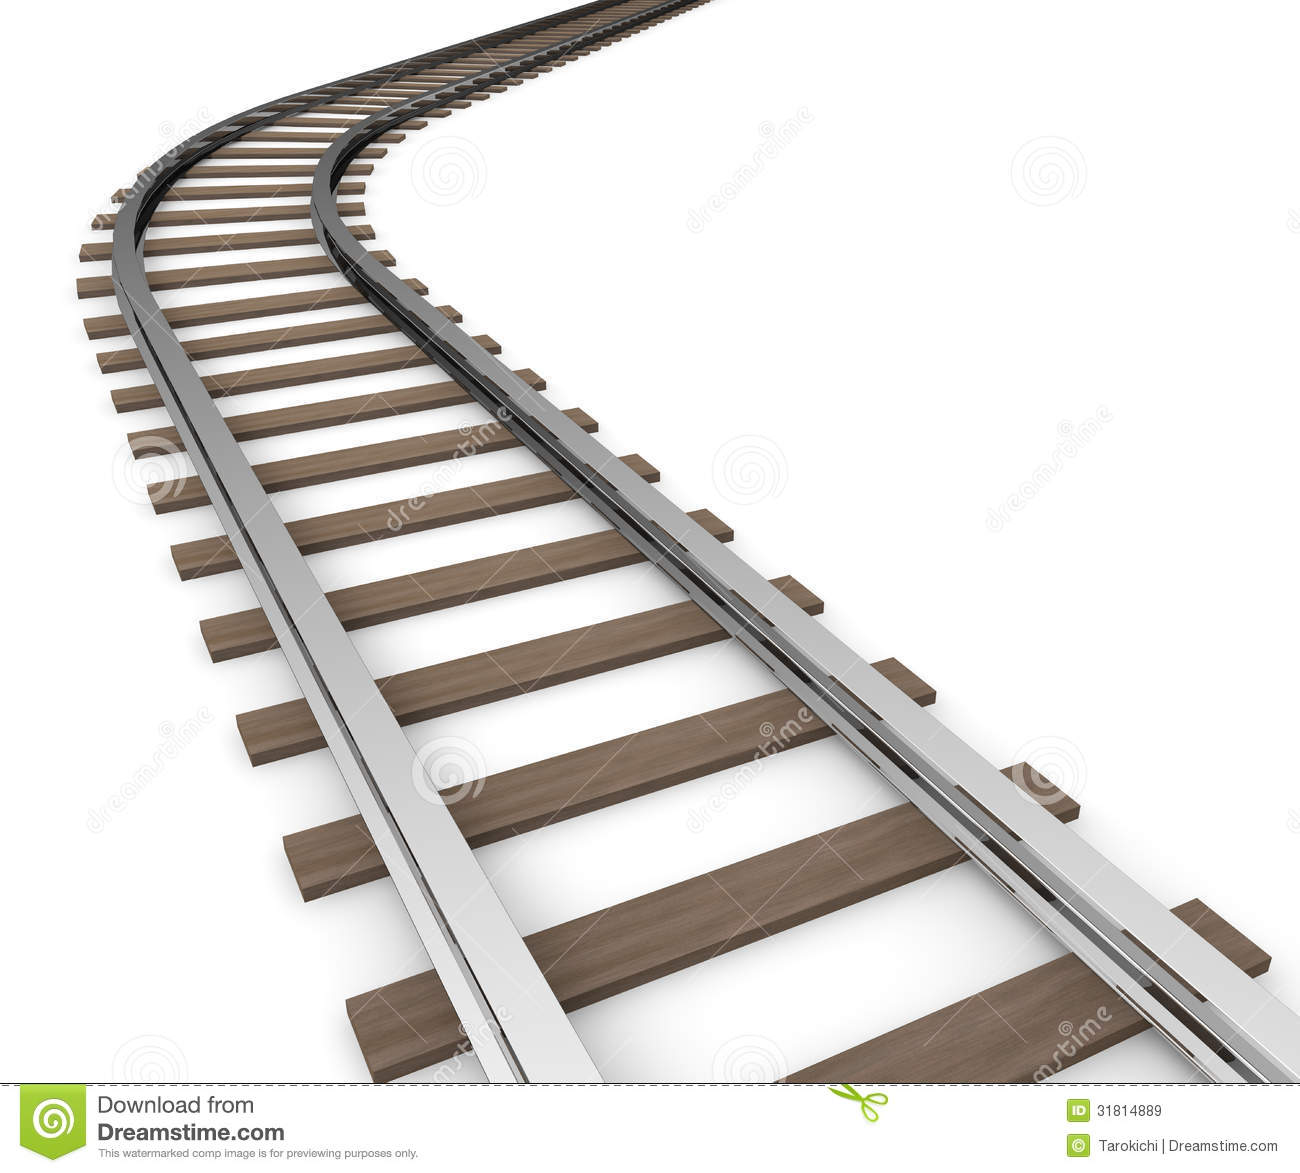 Railways clipart Image Top Rail Free 78